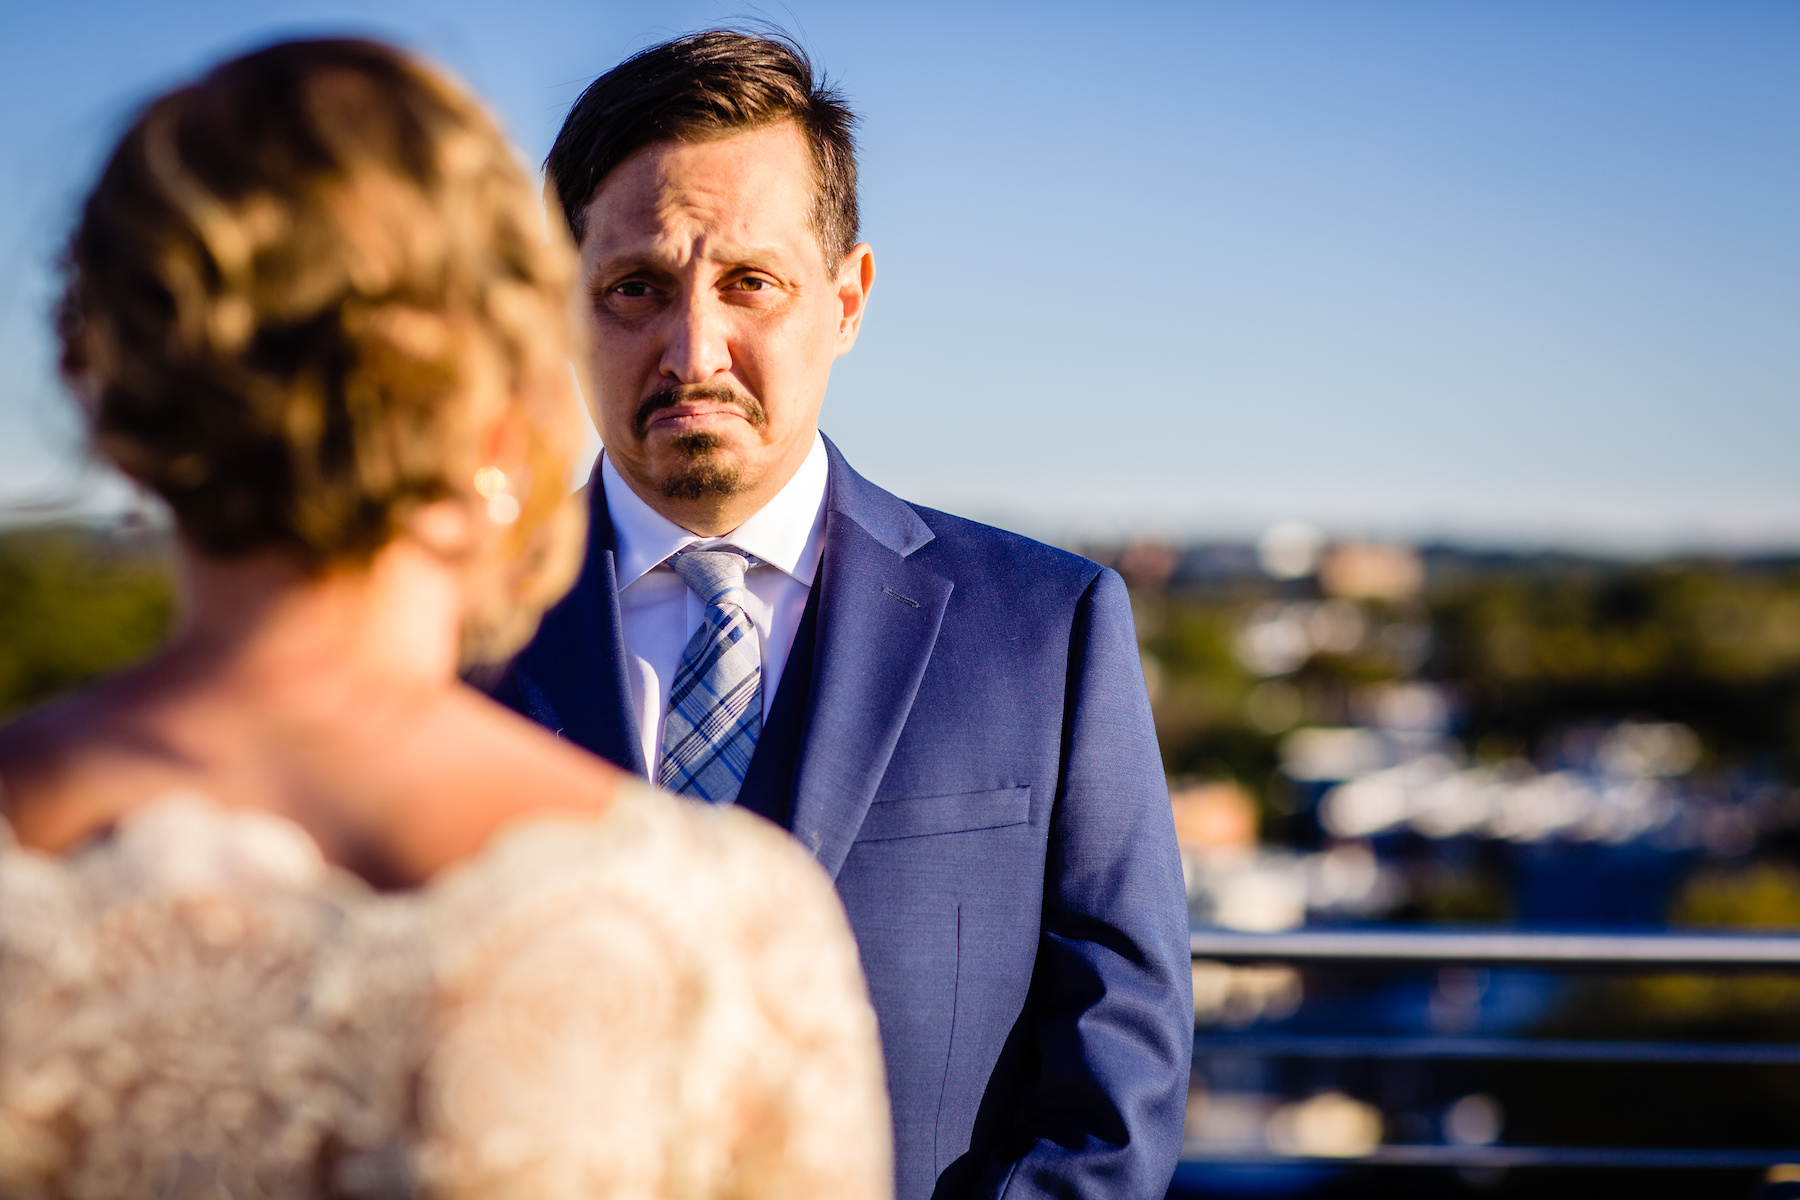 Capitol Hill Wedding Photos - DC Elopements | The groom is overcome with emotion as his bride reads her vows